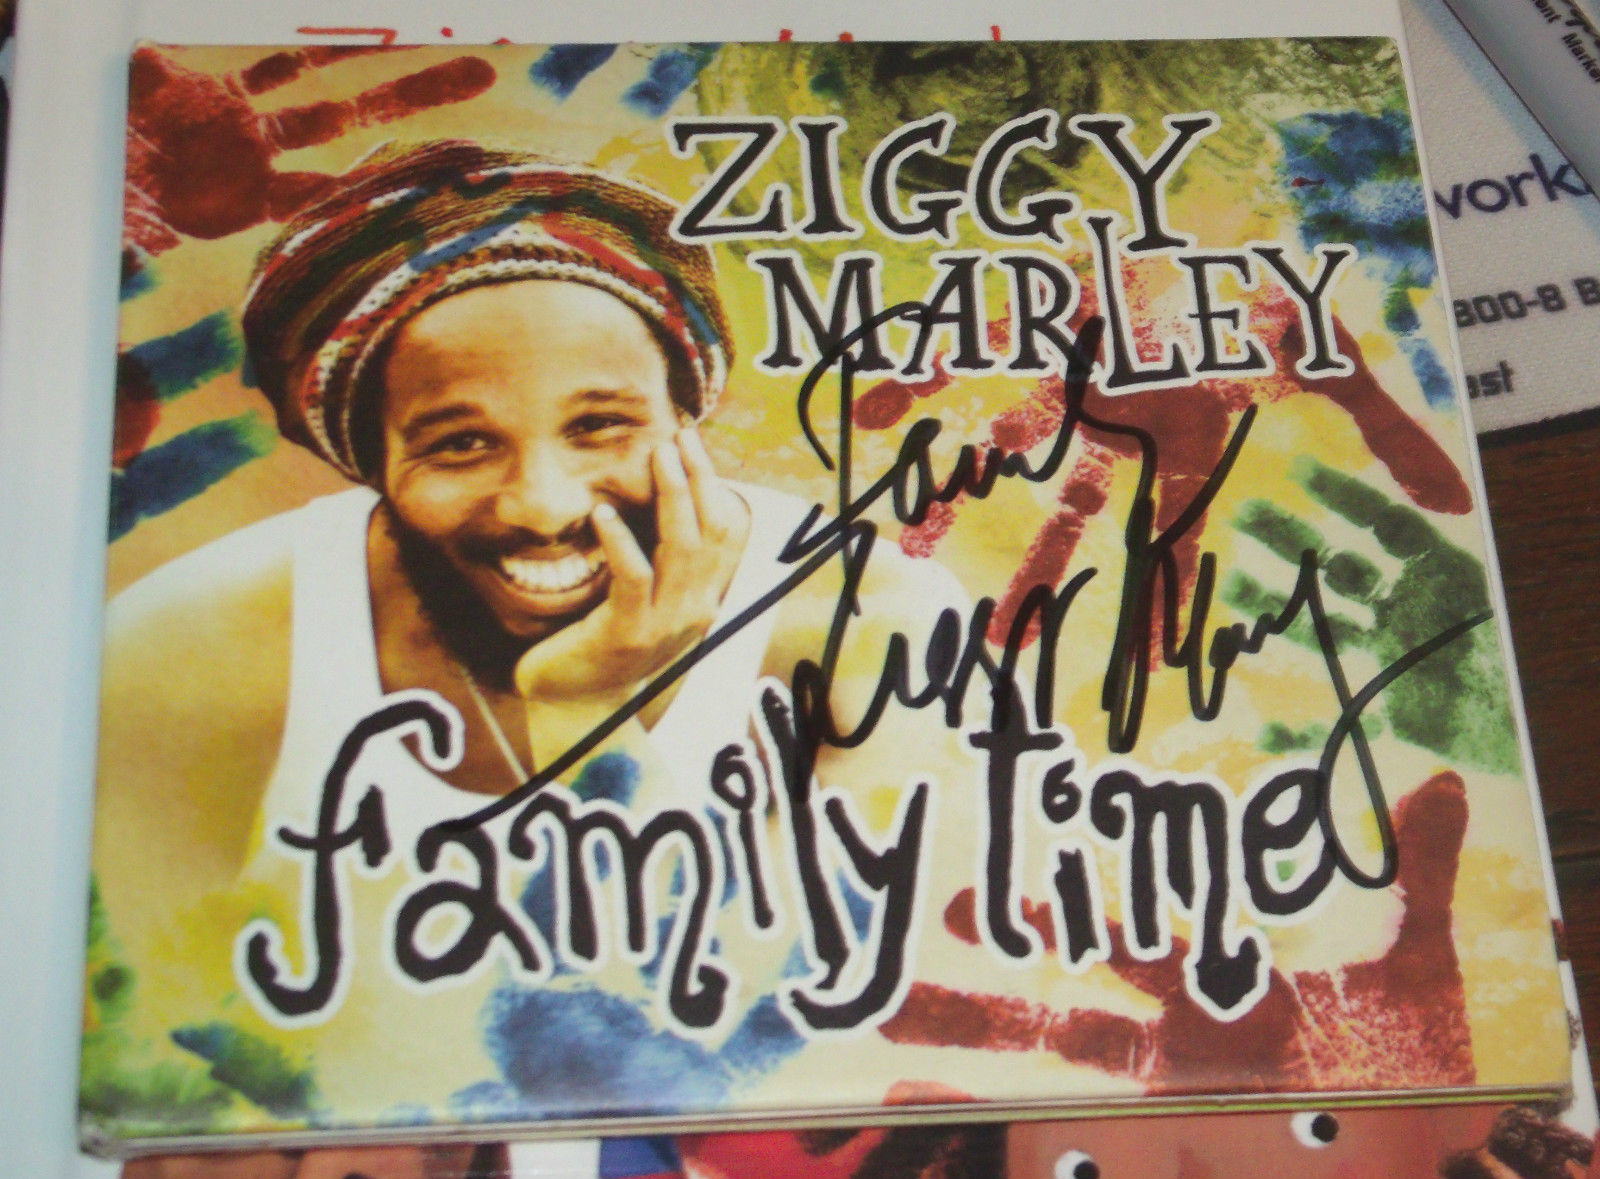 FAMILY TIME SIGNED BY ZIGGY MARLEY 3X CD HOLDER & BOOKLET & POSTER